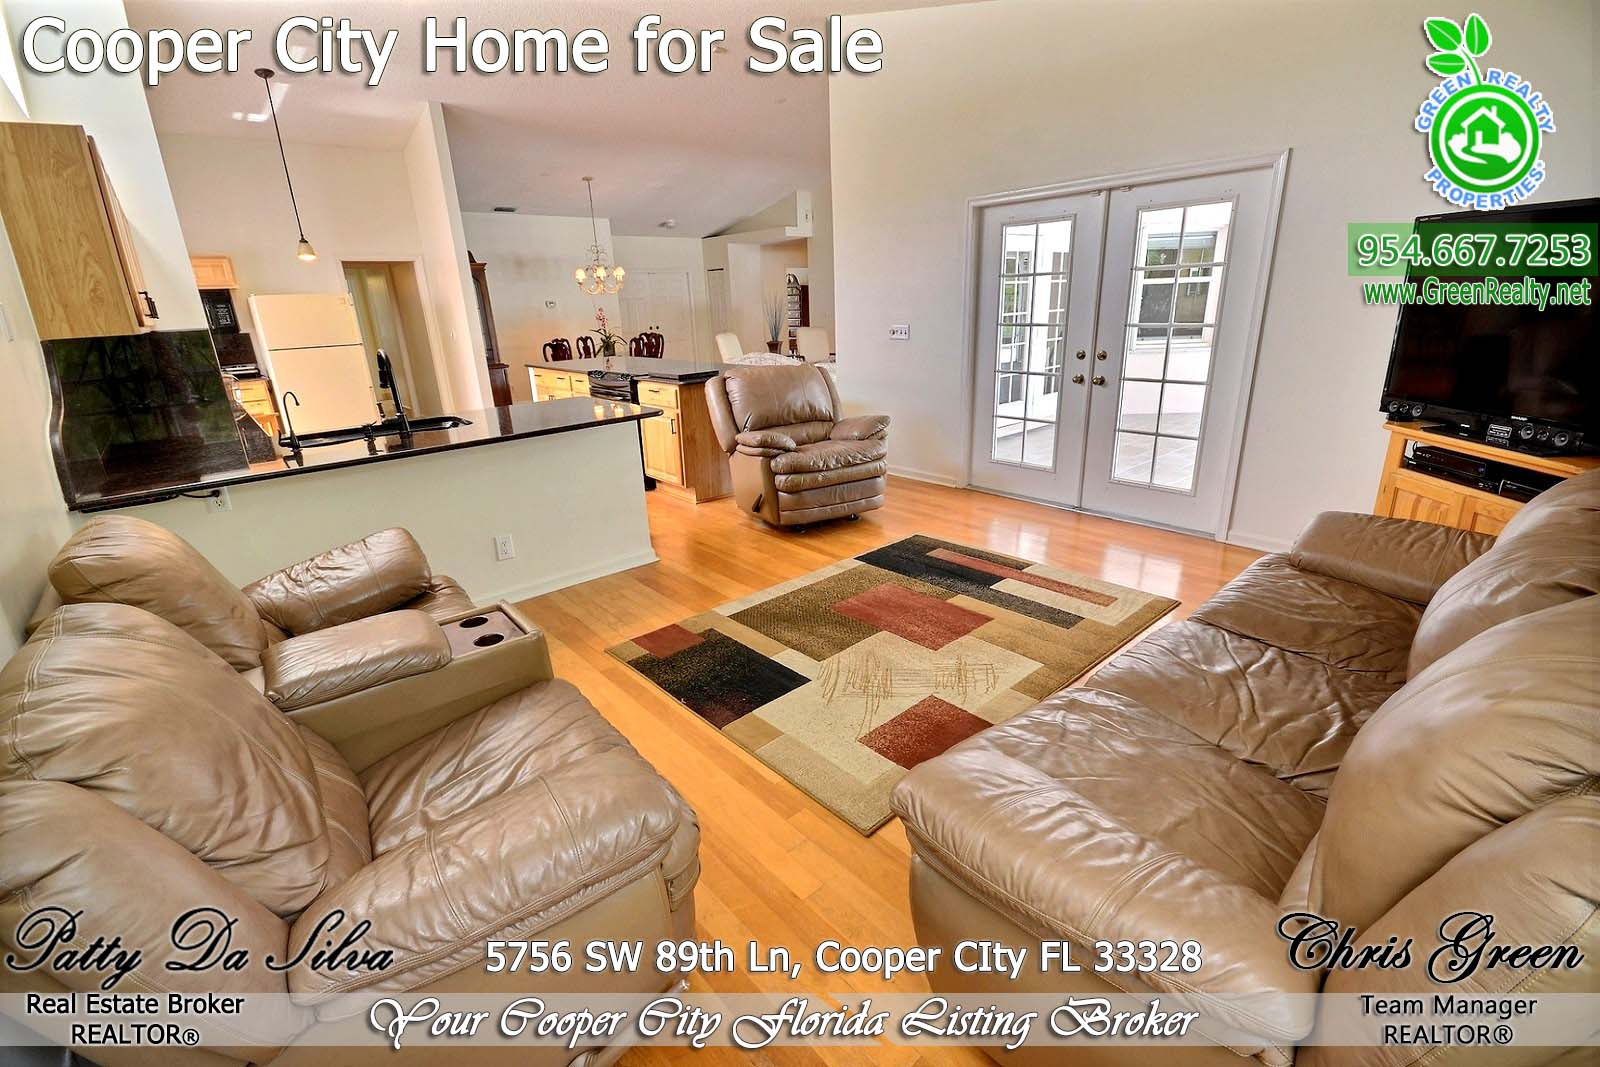 Cooper City Realtors - Coopers Pointe